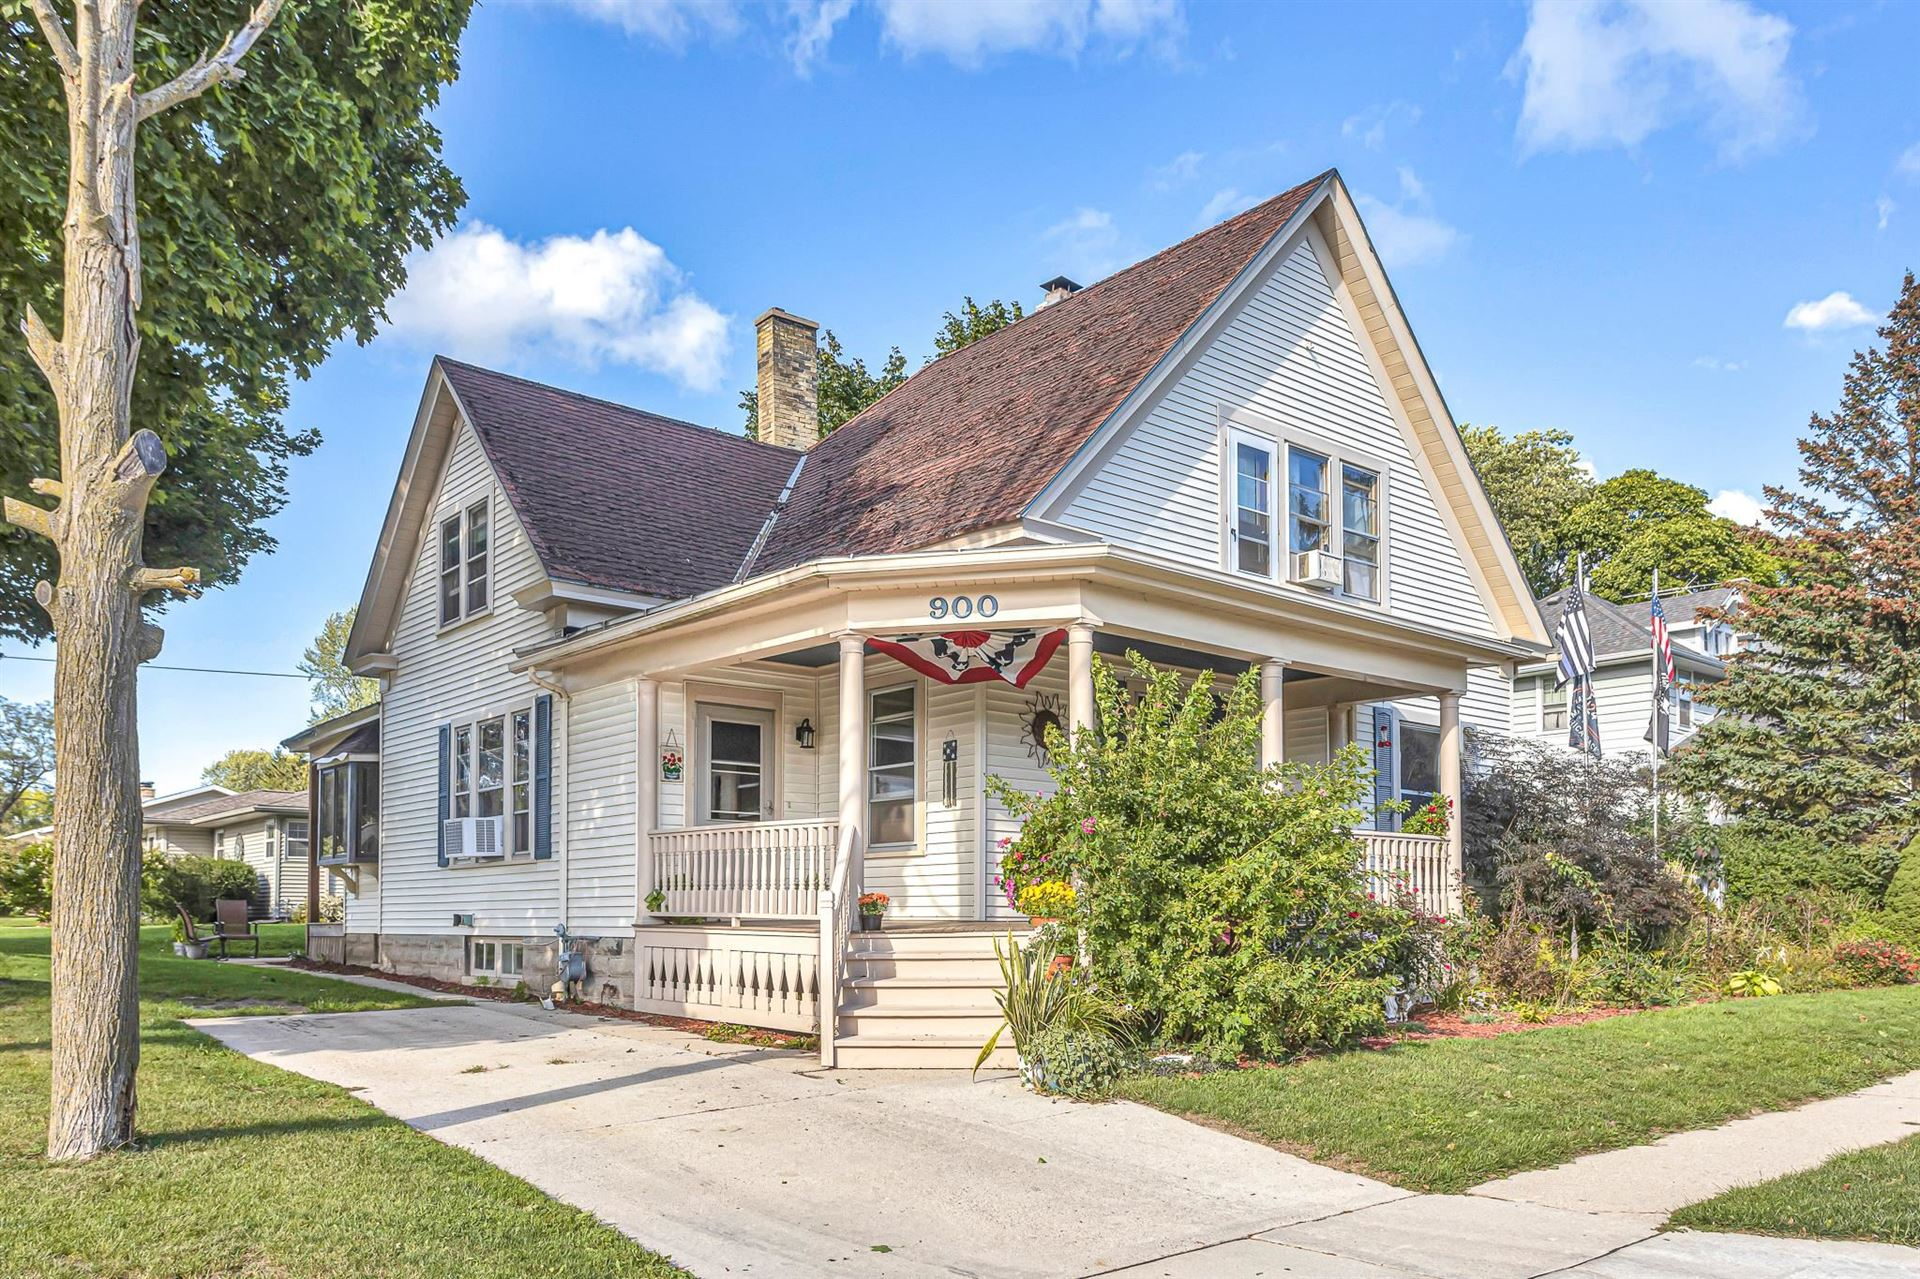 900 REED Street, Plymouth, WI 53073 - MLS#: 50247331